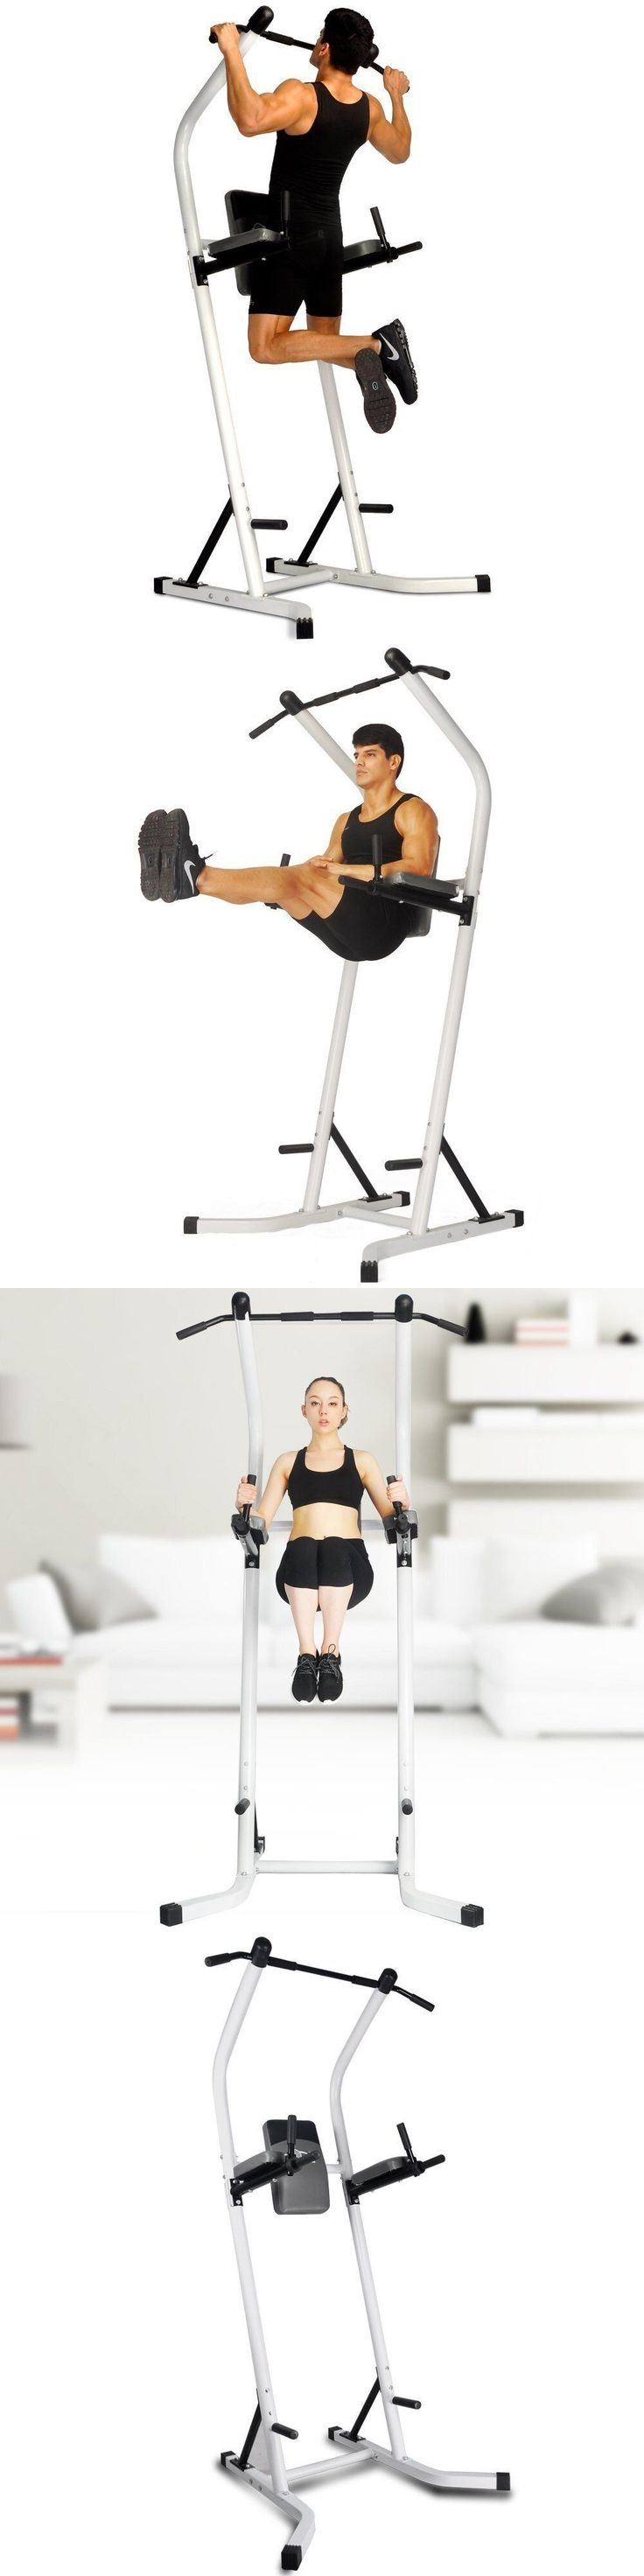 Pull Up Bars 179816: Chin Up Bar Sports Equipment Power Pull Up Bar Tower Standing Dip Station -> BUY IT NOW ONLY: $169.99 on eBay!